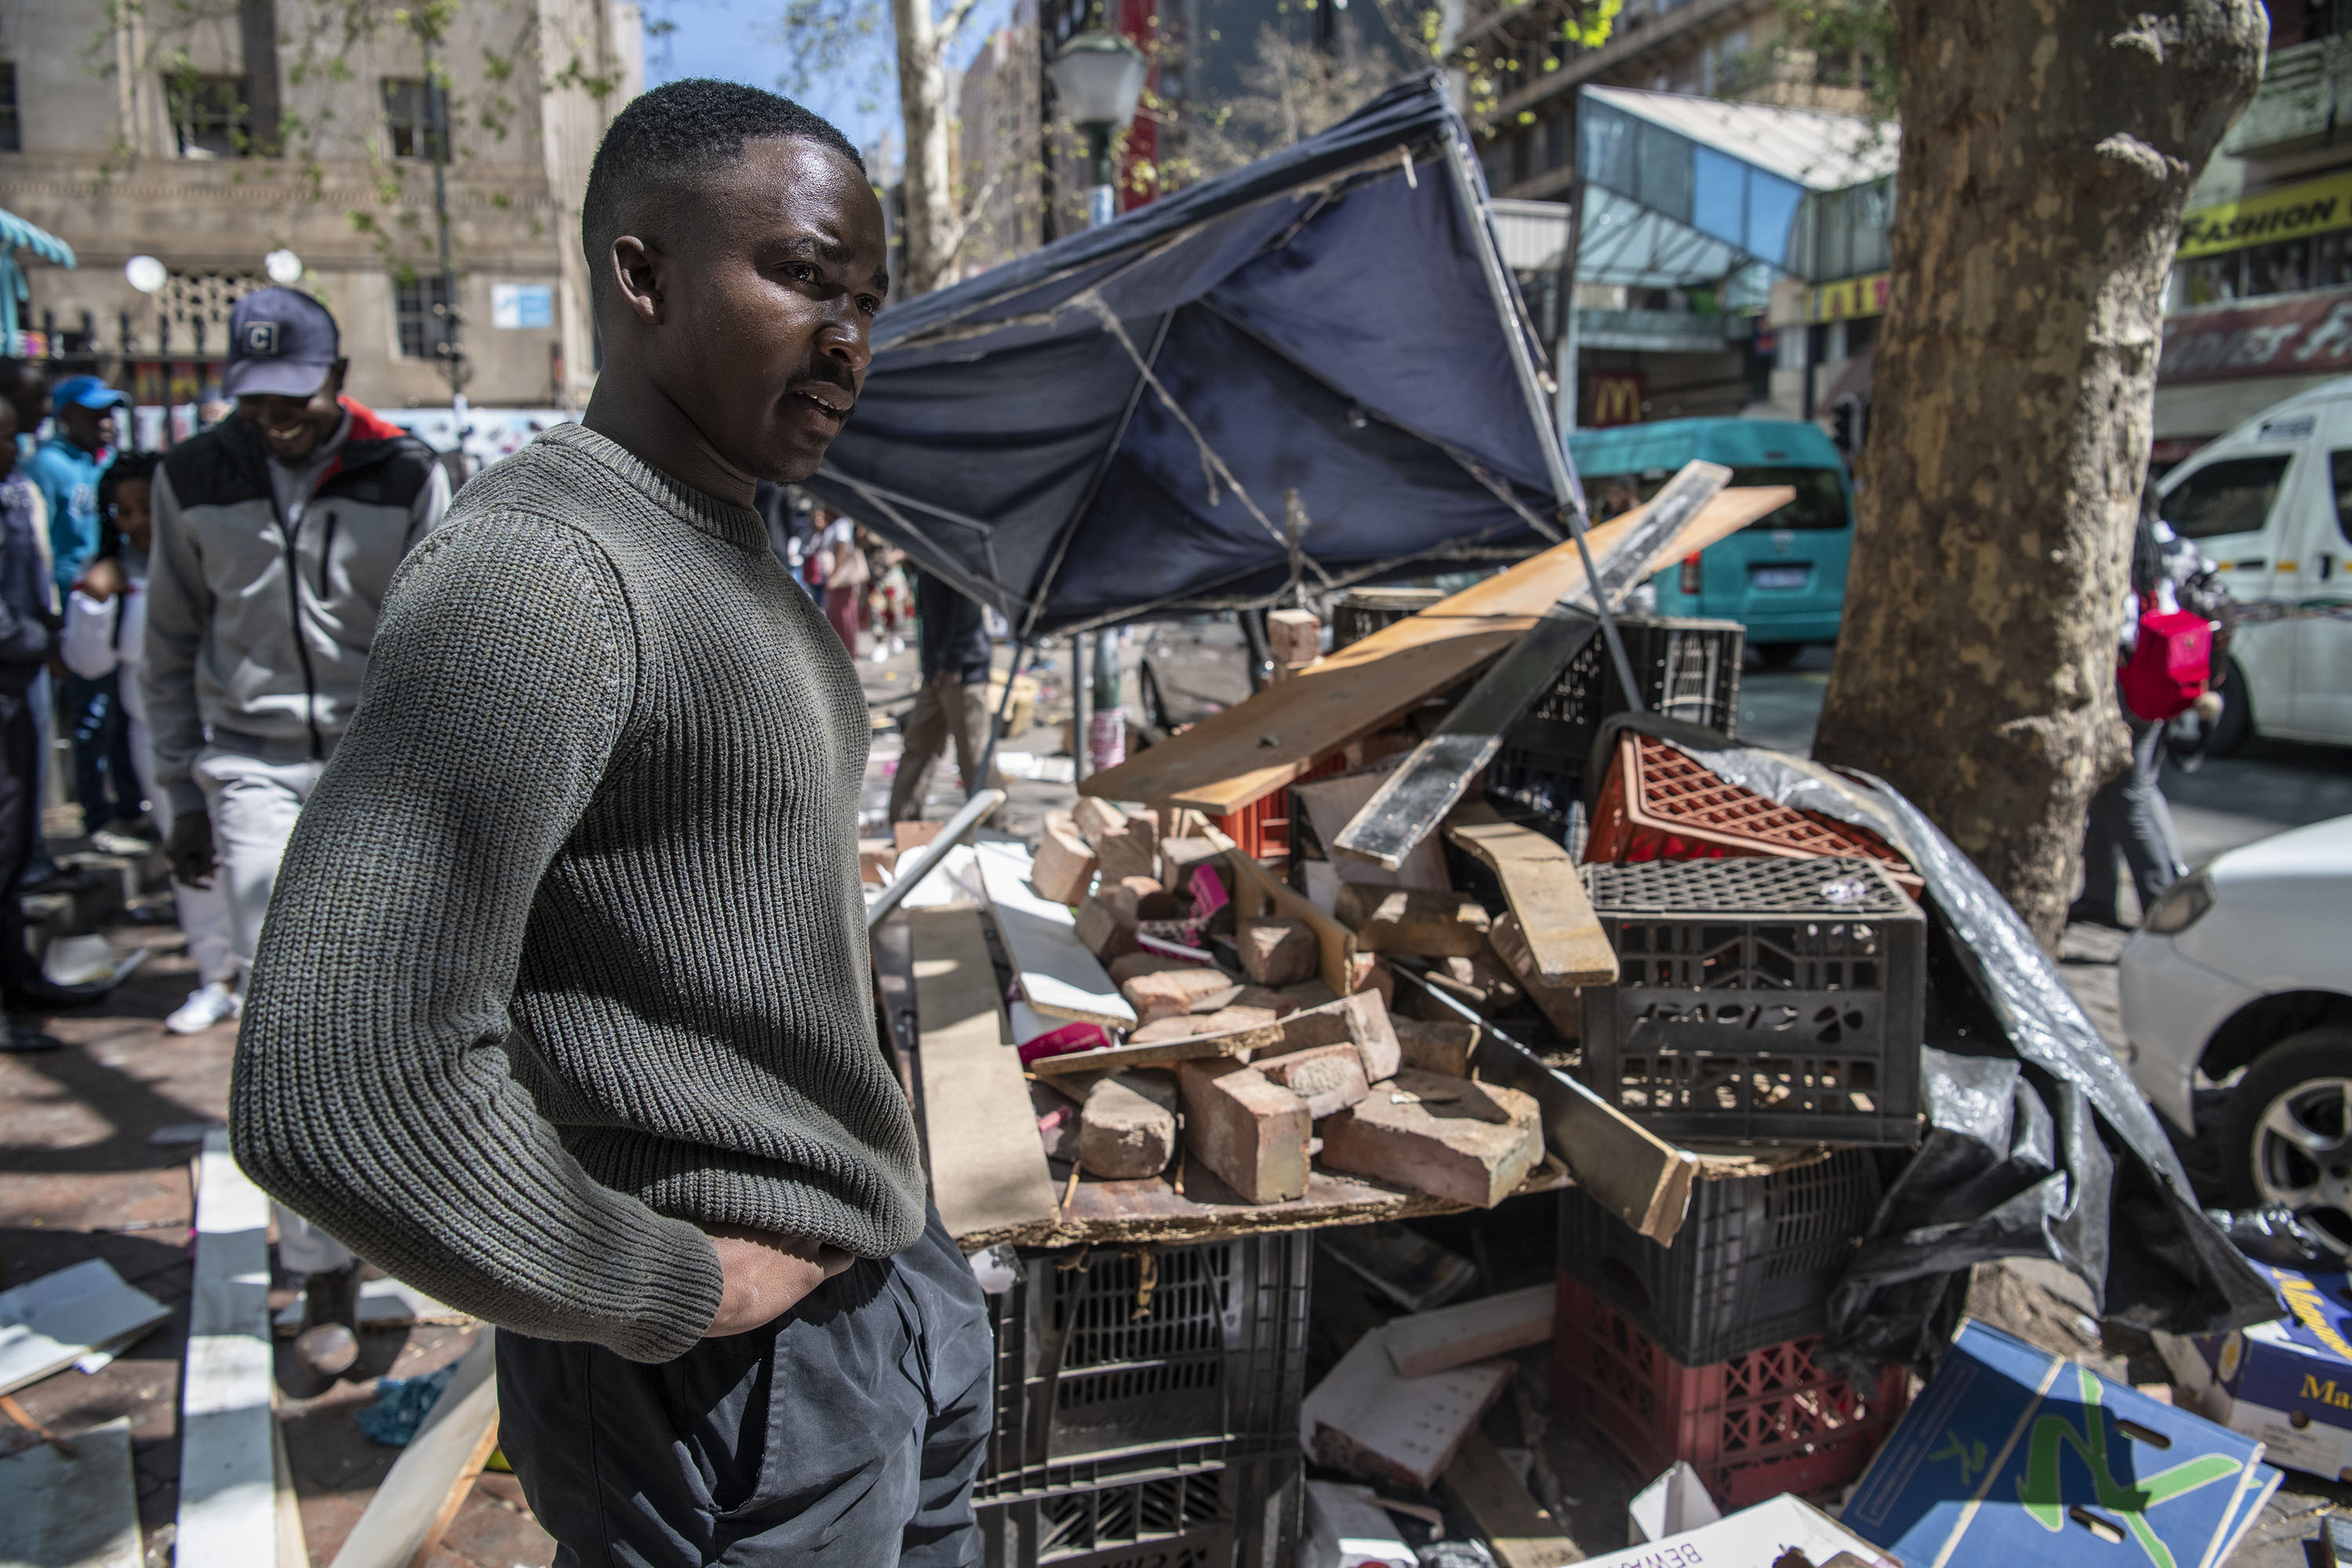 2 September 2019: Gift Ngema, a South African from Soweto, was left in shock after the mob attacked his street stall where he sold cosmetics, looting all his goods and stealing his personal belongings.